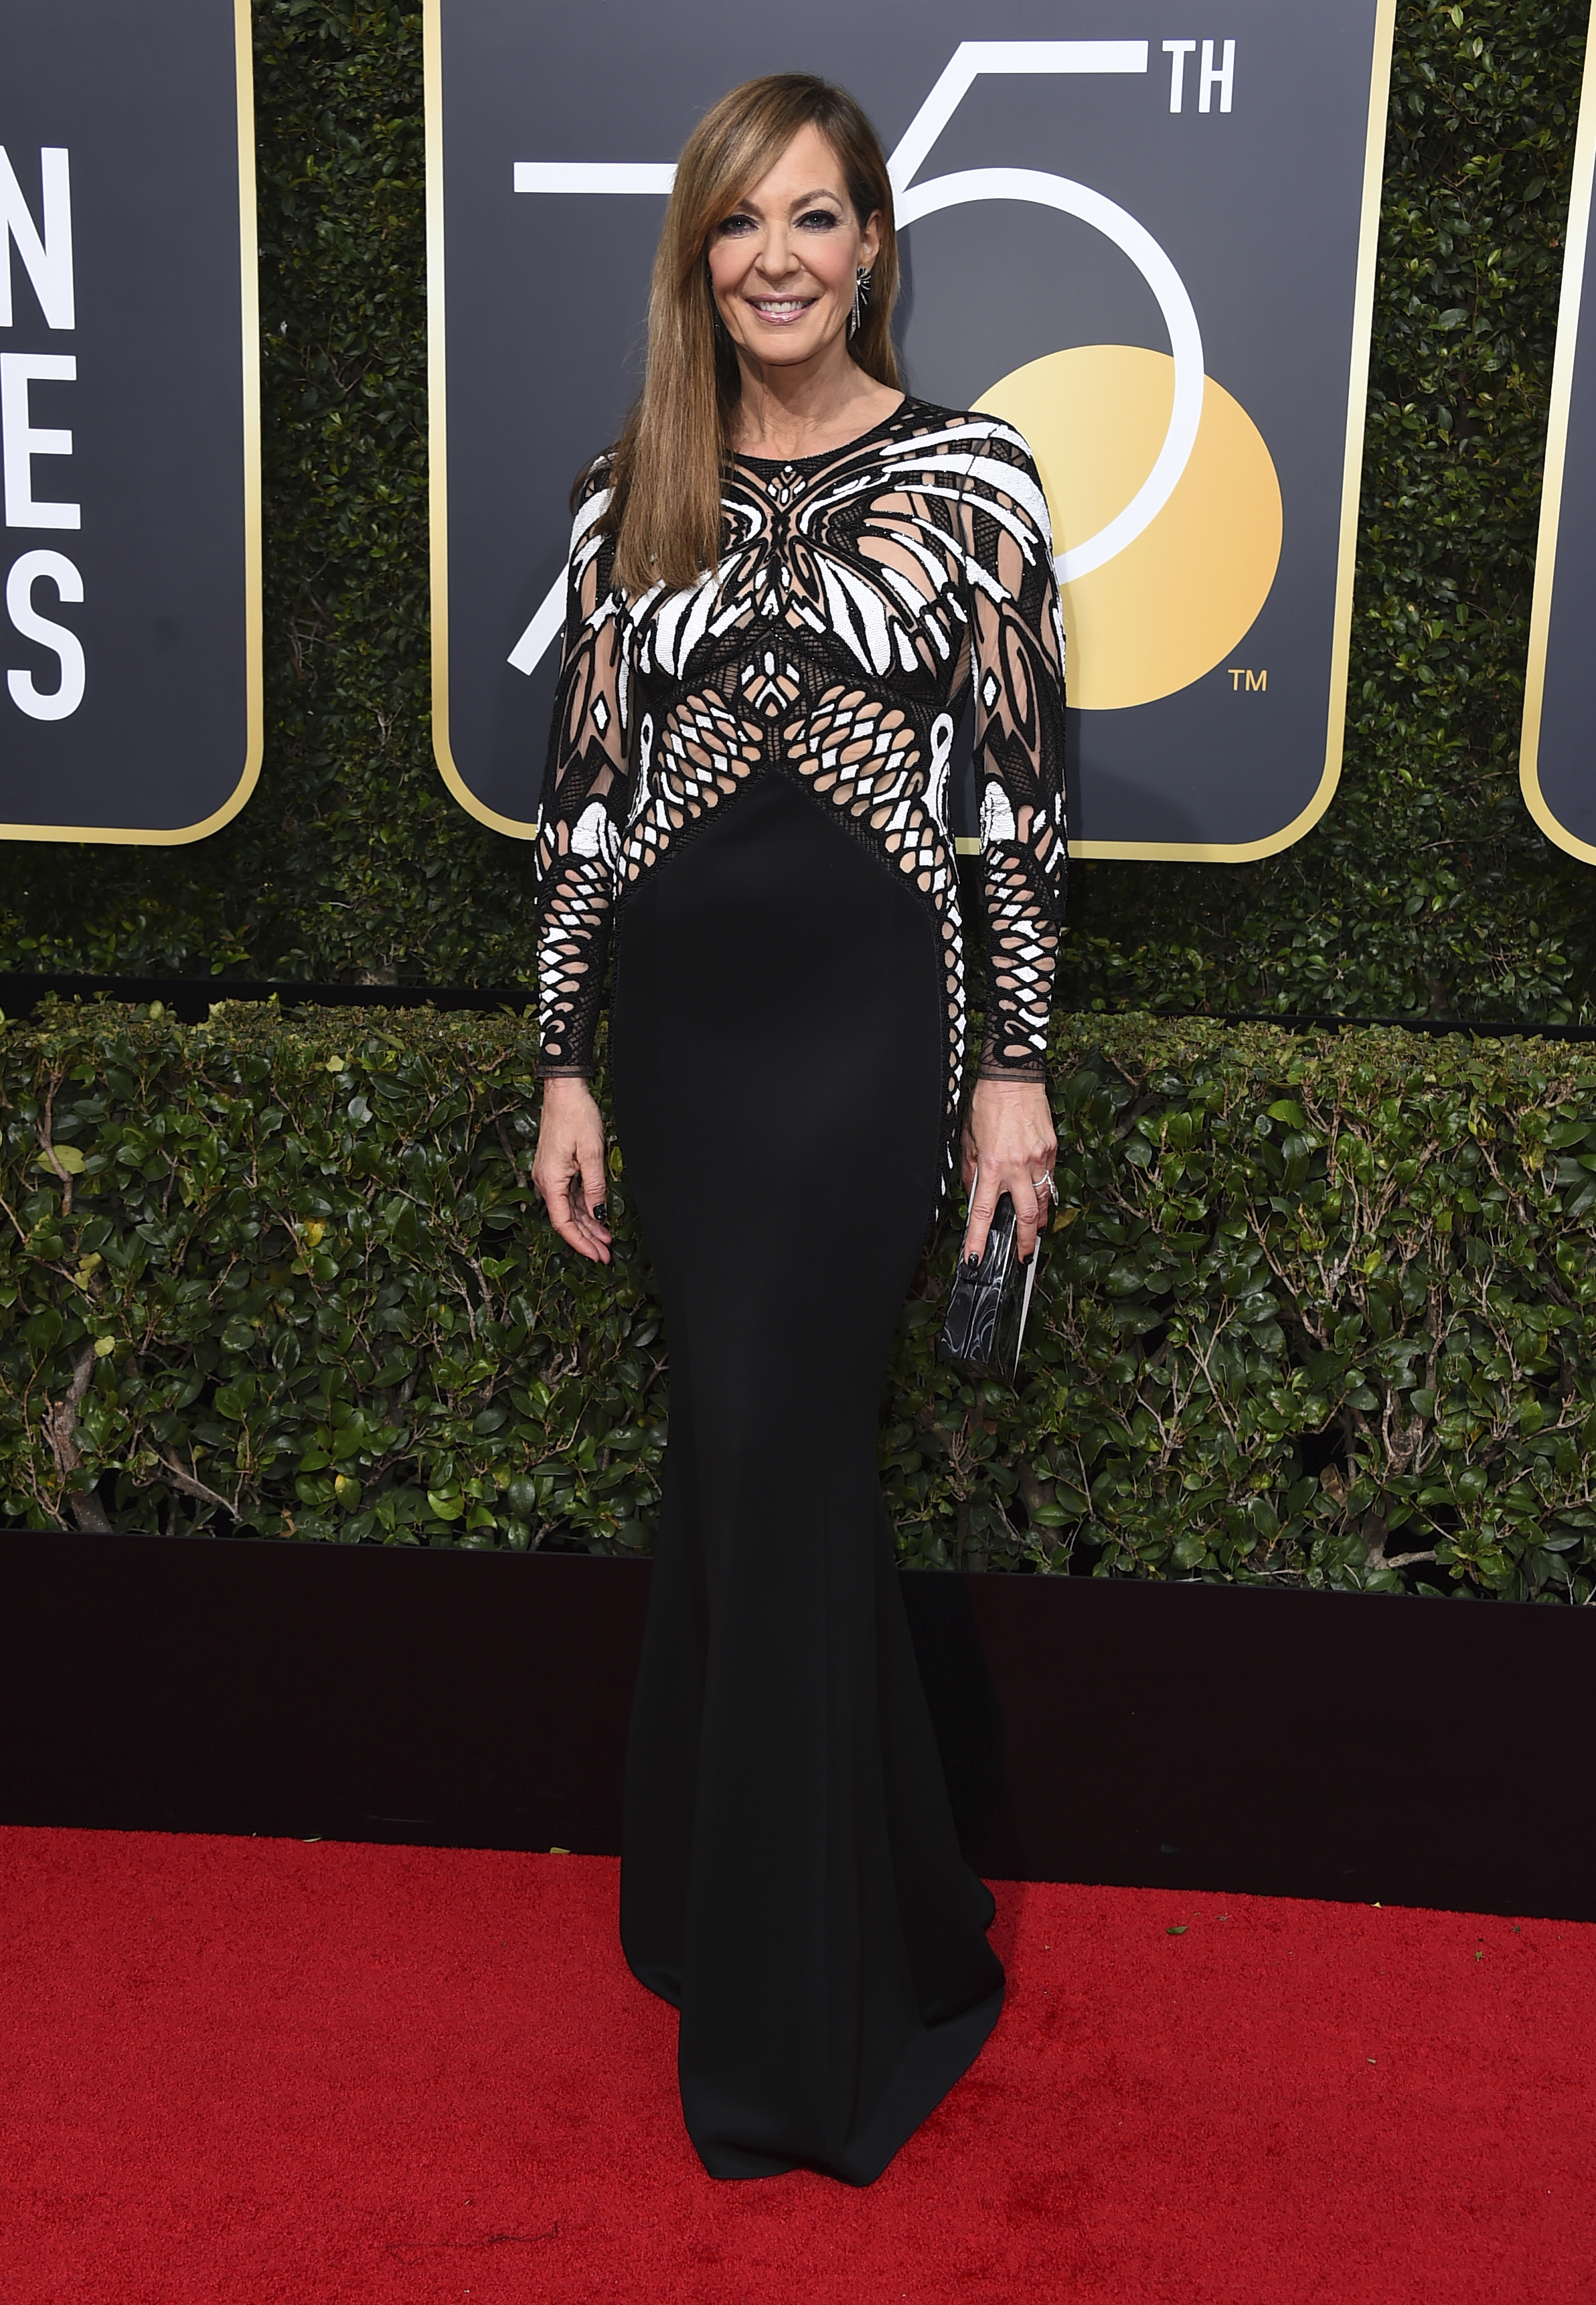 <div class='meta'><div class='origin-logo' data-origin='AP'></div><span class='caption-text' data-credit='Jordan Strauss/Invision/AP'>Allison Janney arrives at the 75th annual Golden Globe Awards at the Beverly Hilton Hotel on Sunday, Jan. 7, 2018, in Beverly Hills, Calif.</span></div>